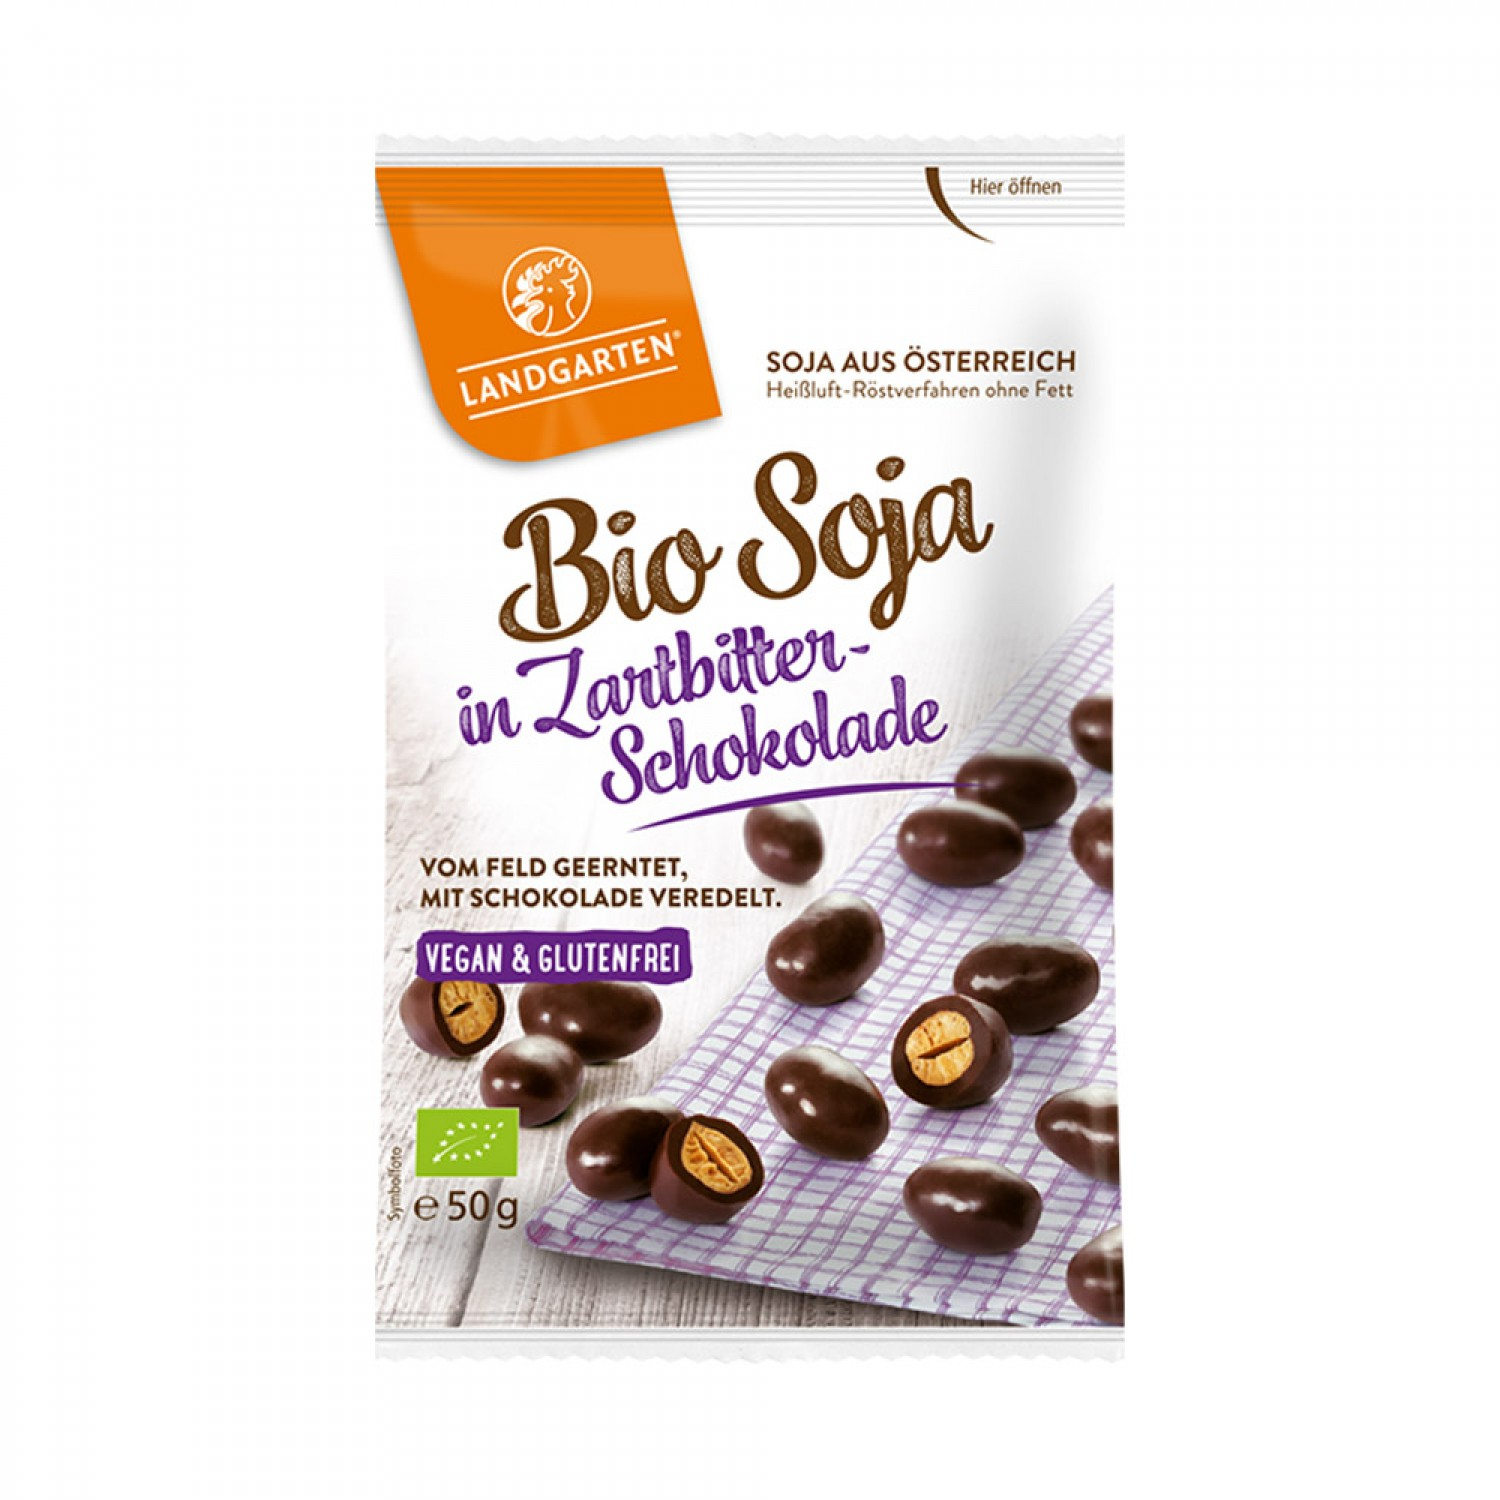 Vegan & Organic Soya in Dark Chocolate | Landgarten